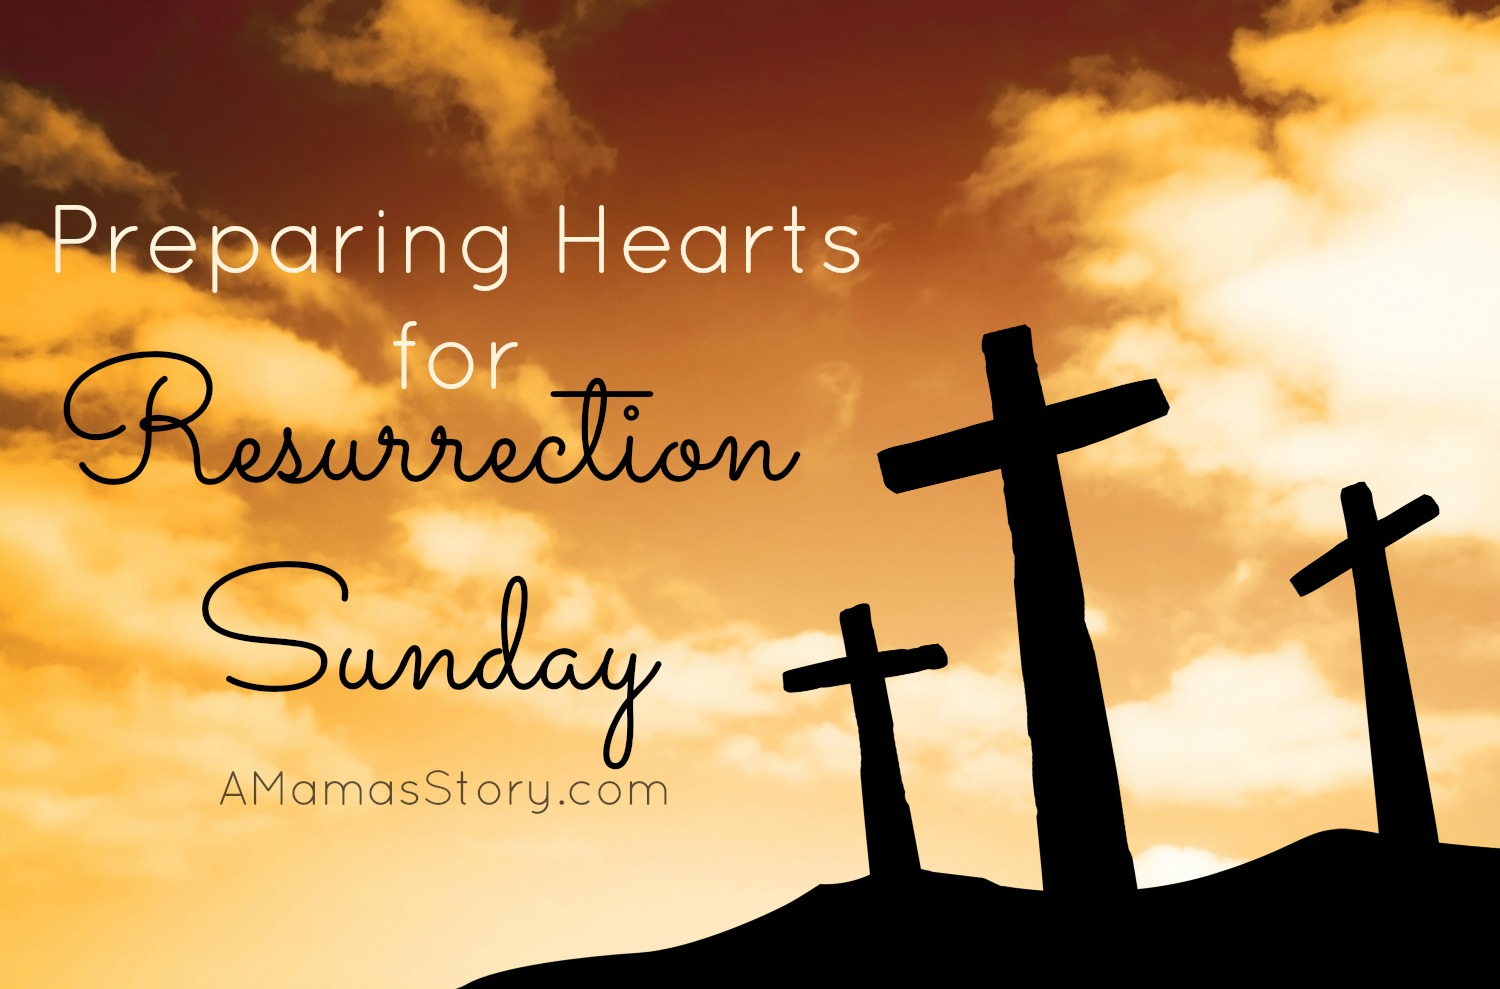 Preparing Hearts for Resurrection Sunday